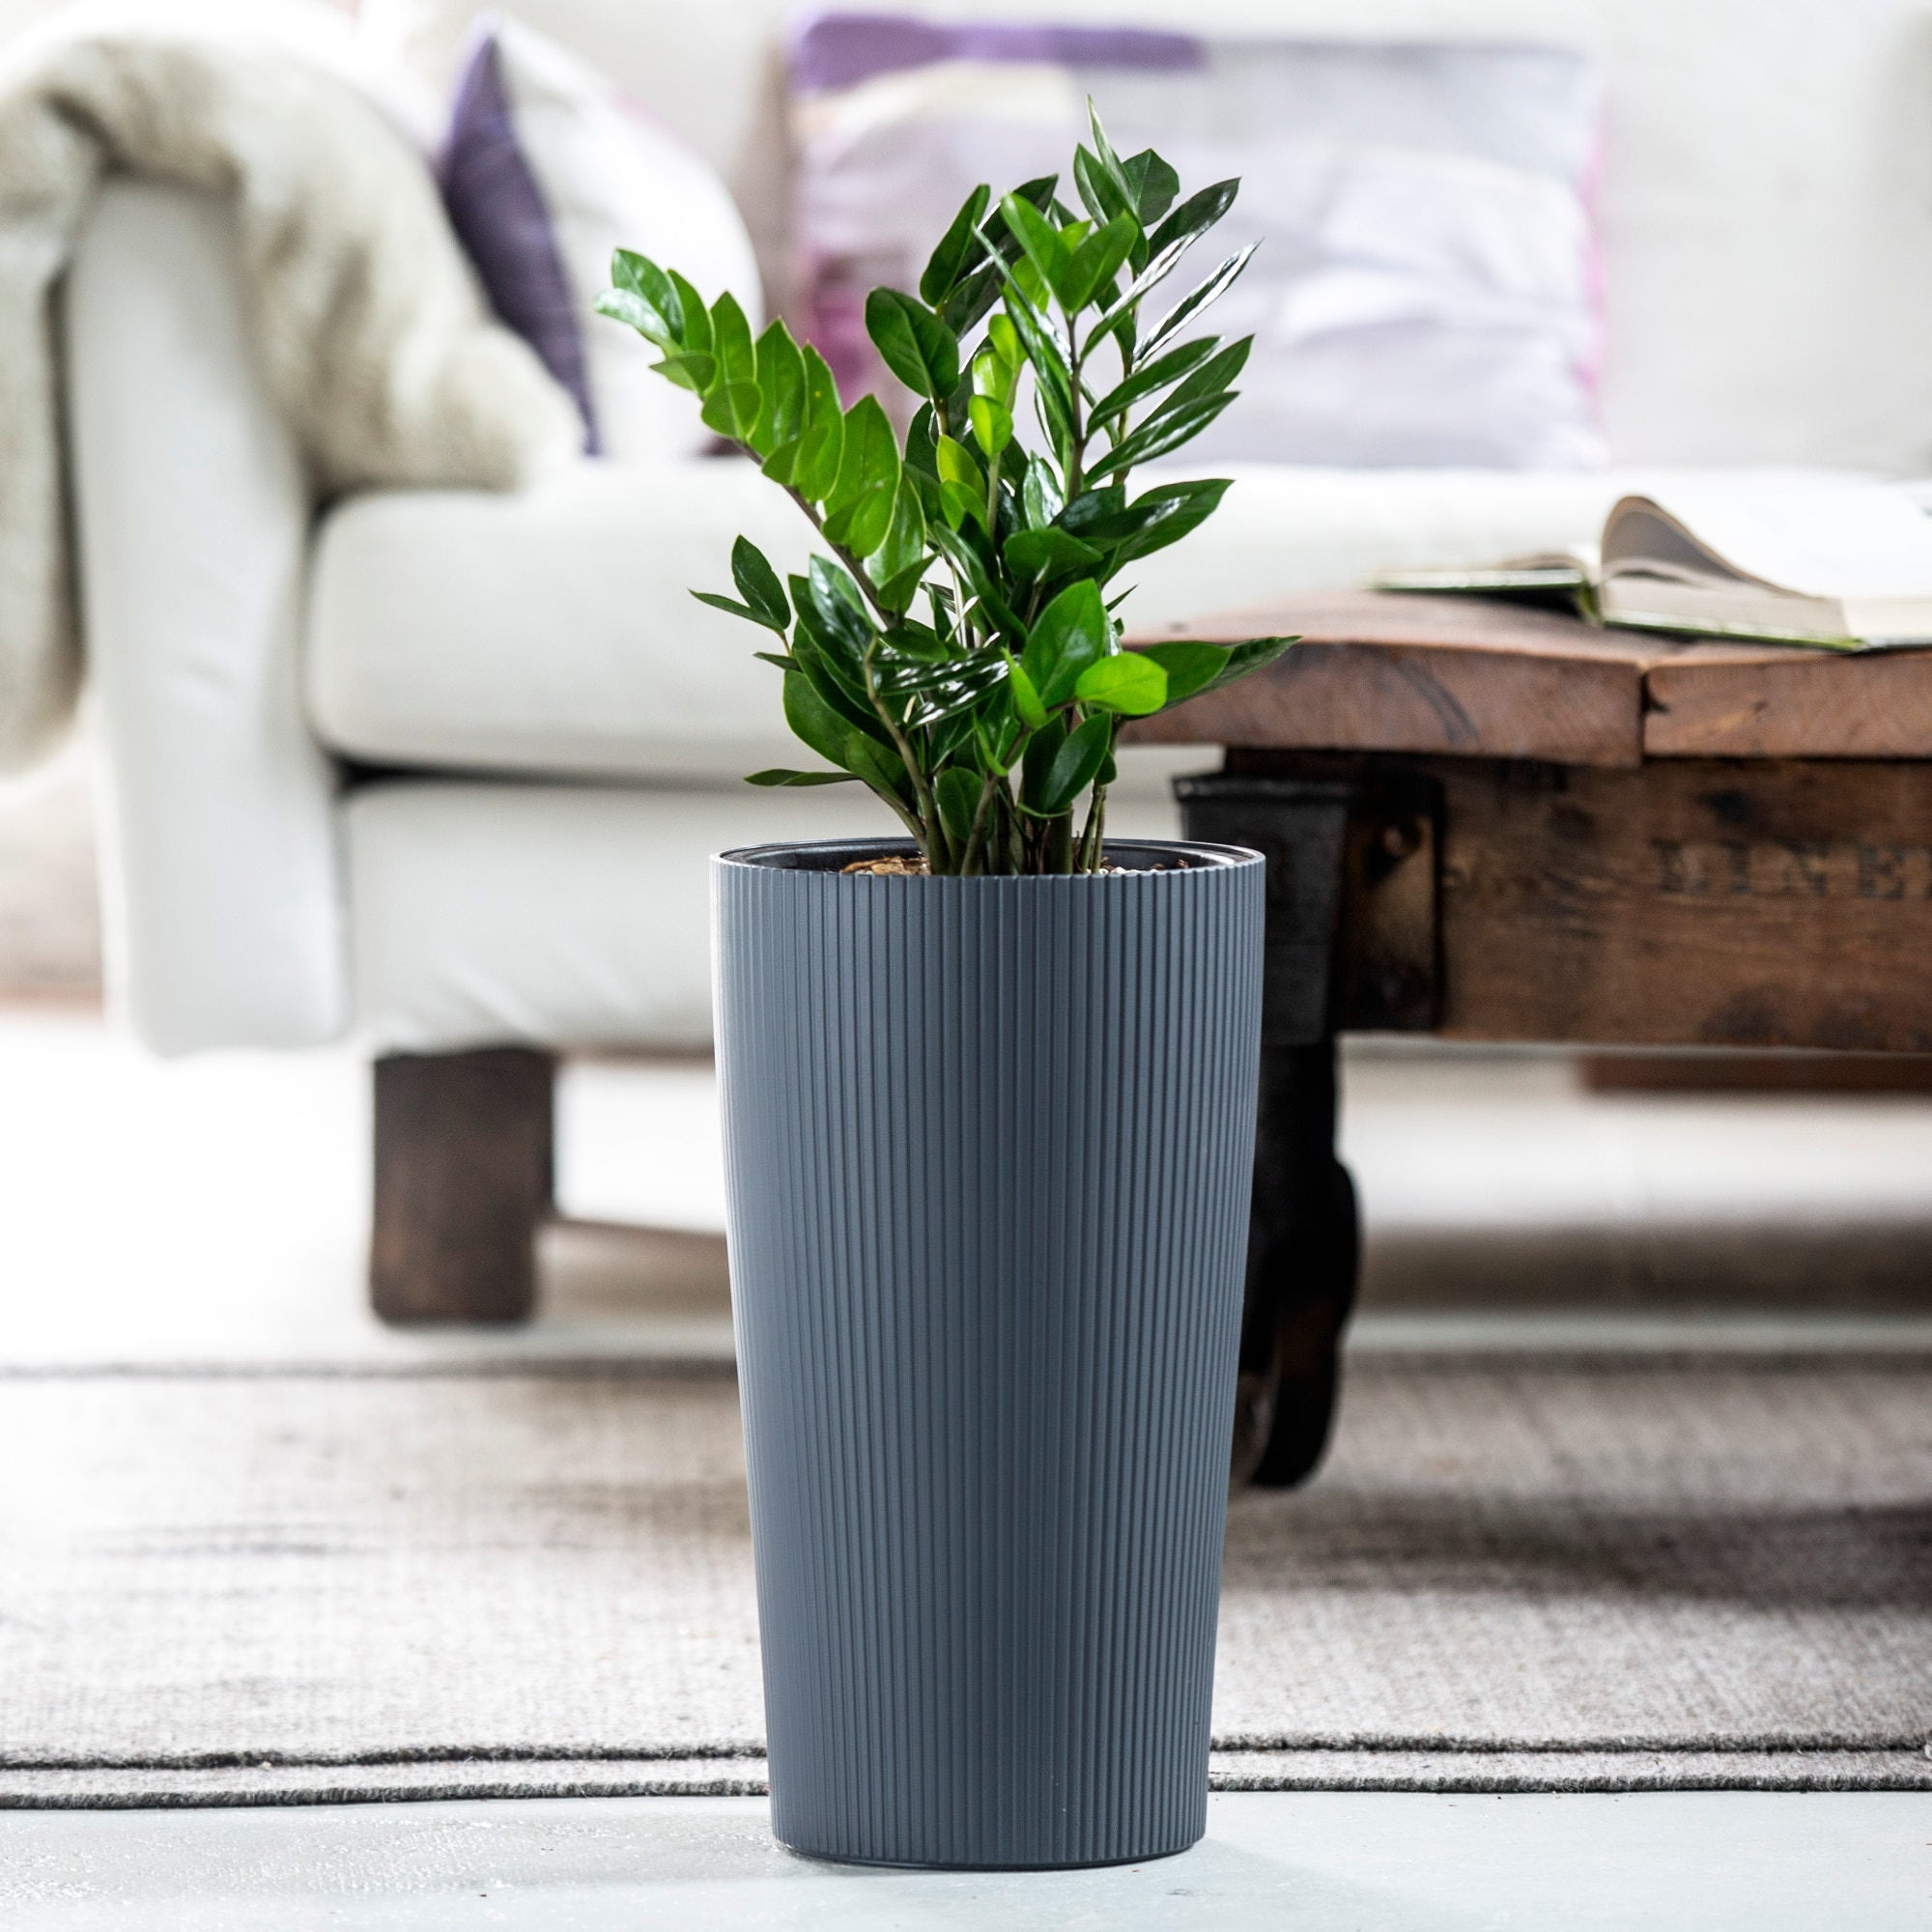 ZZ plant potted in Lechuza Cilindro slate self-watering planter - My City Plants